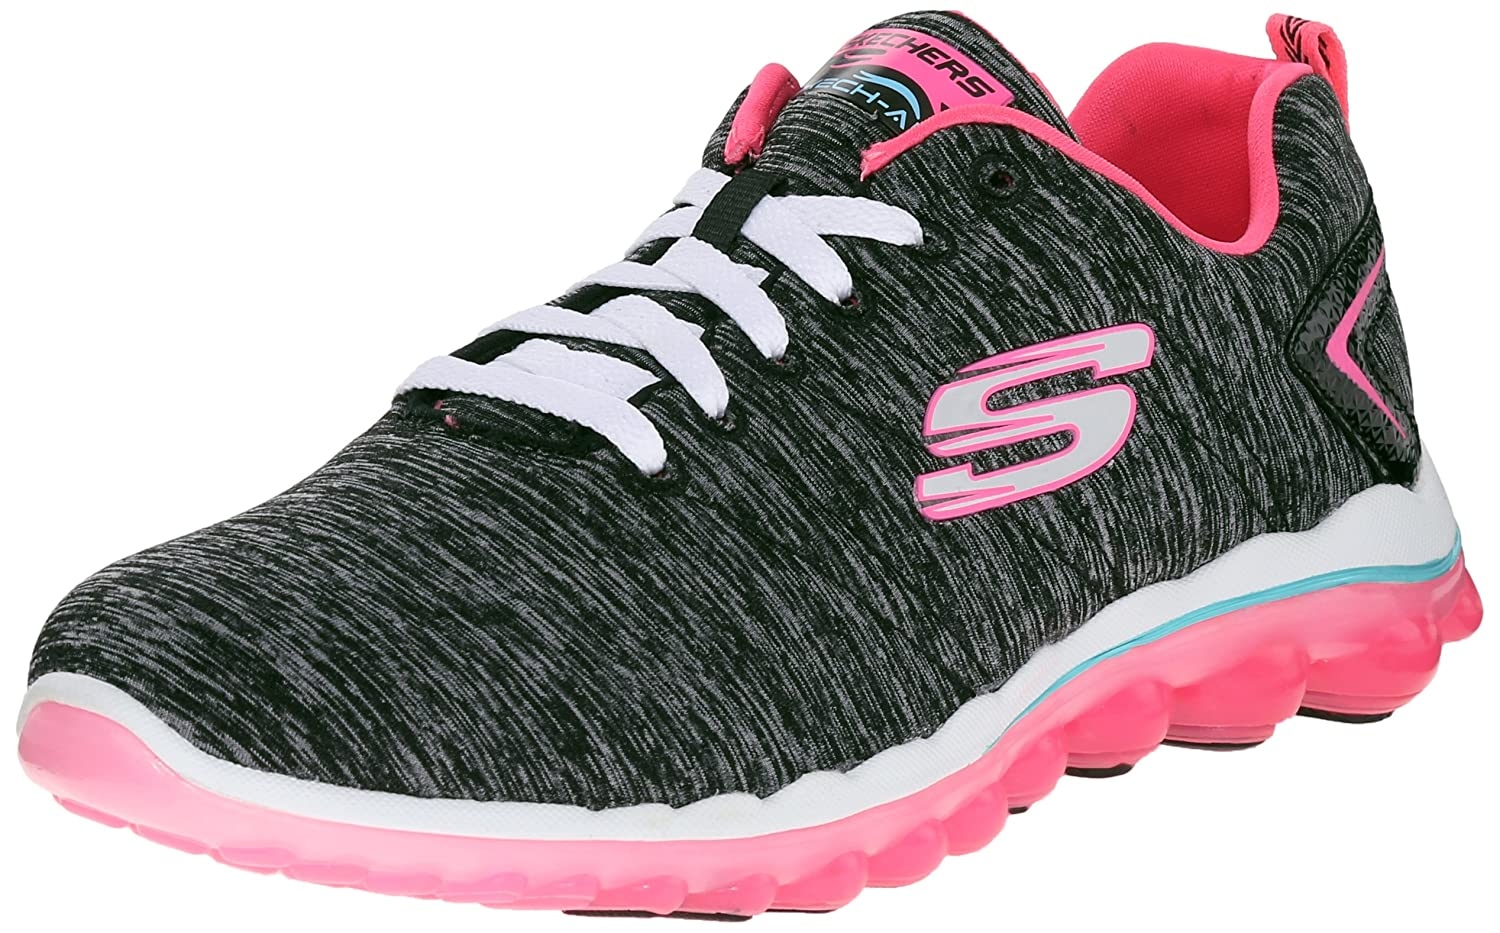 Skechers Sport Women's Skech Air Run High Fashion Sneaker B013DNEOVG 7.5 B(M) US|Black/Hot Pink